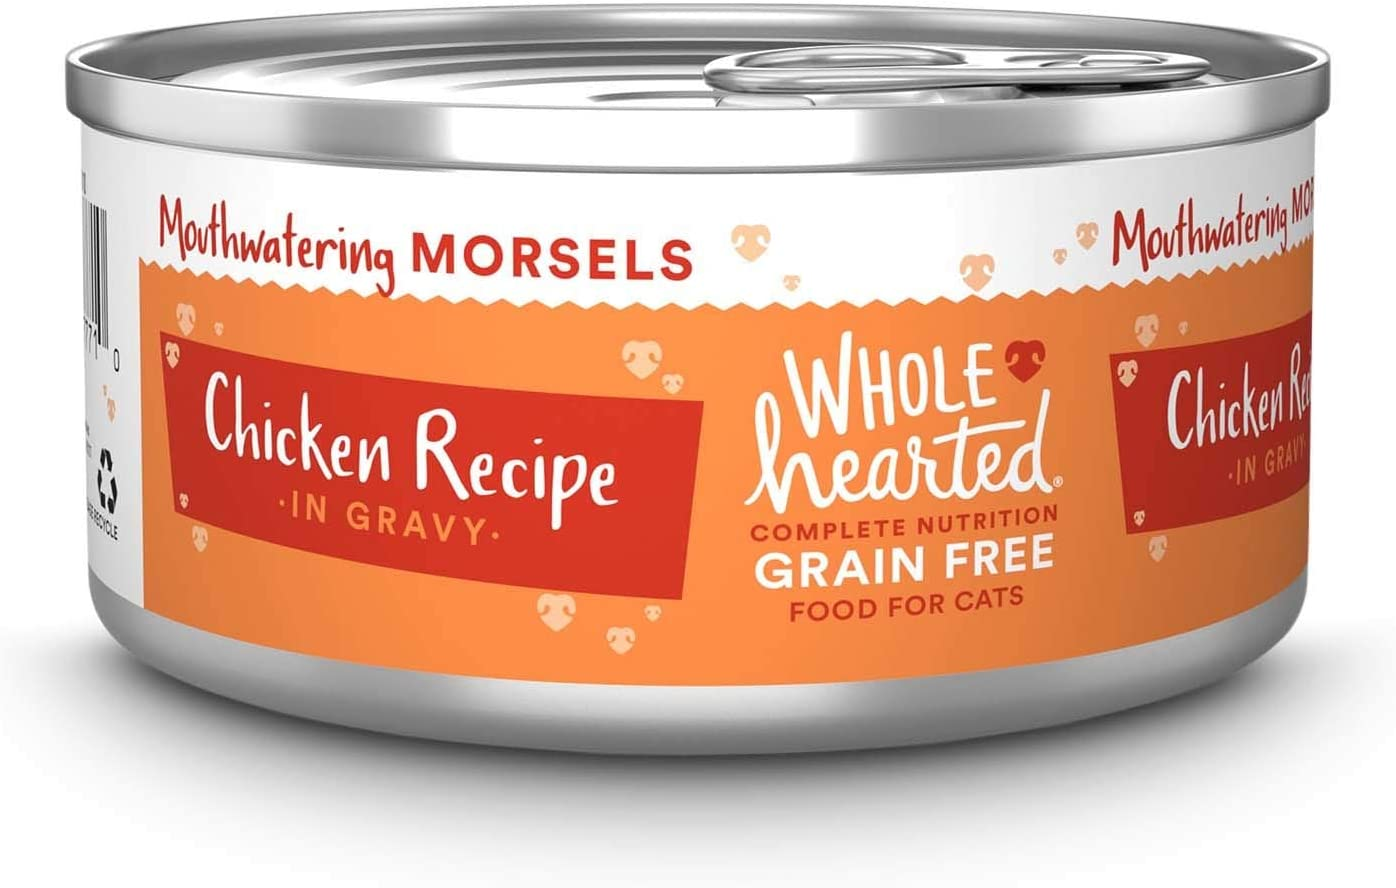 WholeHearted All Life Stages Grain-Free Chicken Recipe Morsels in Gravy Wet Cat Food, 5.5 oz, Case of 12, 12 X 5.5 OZ